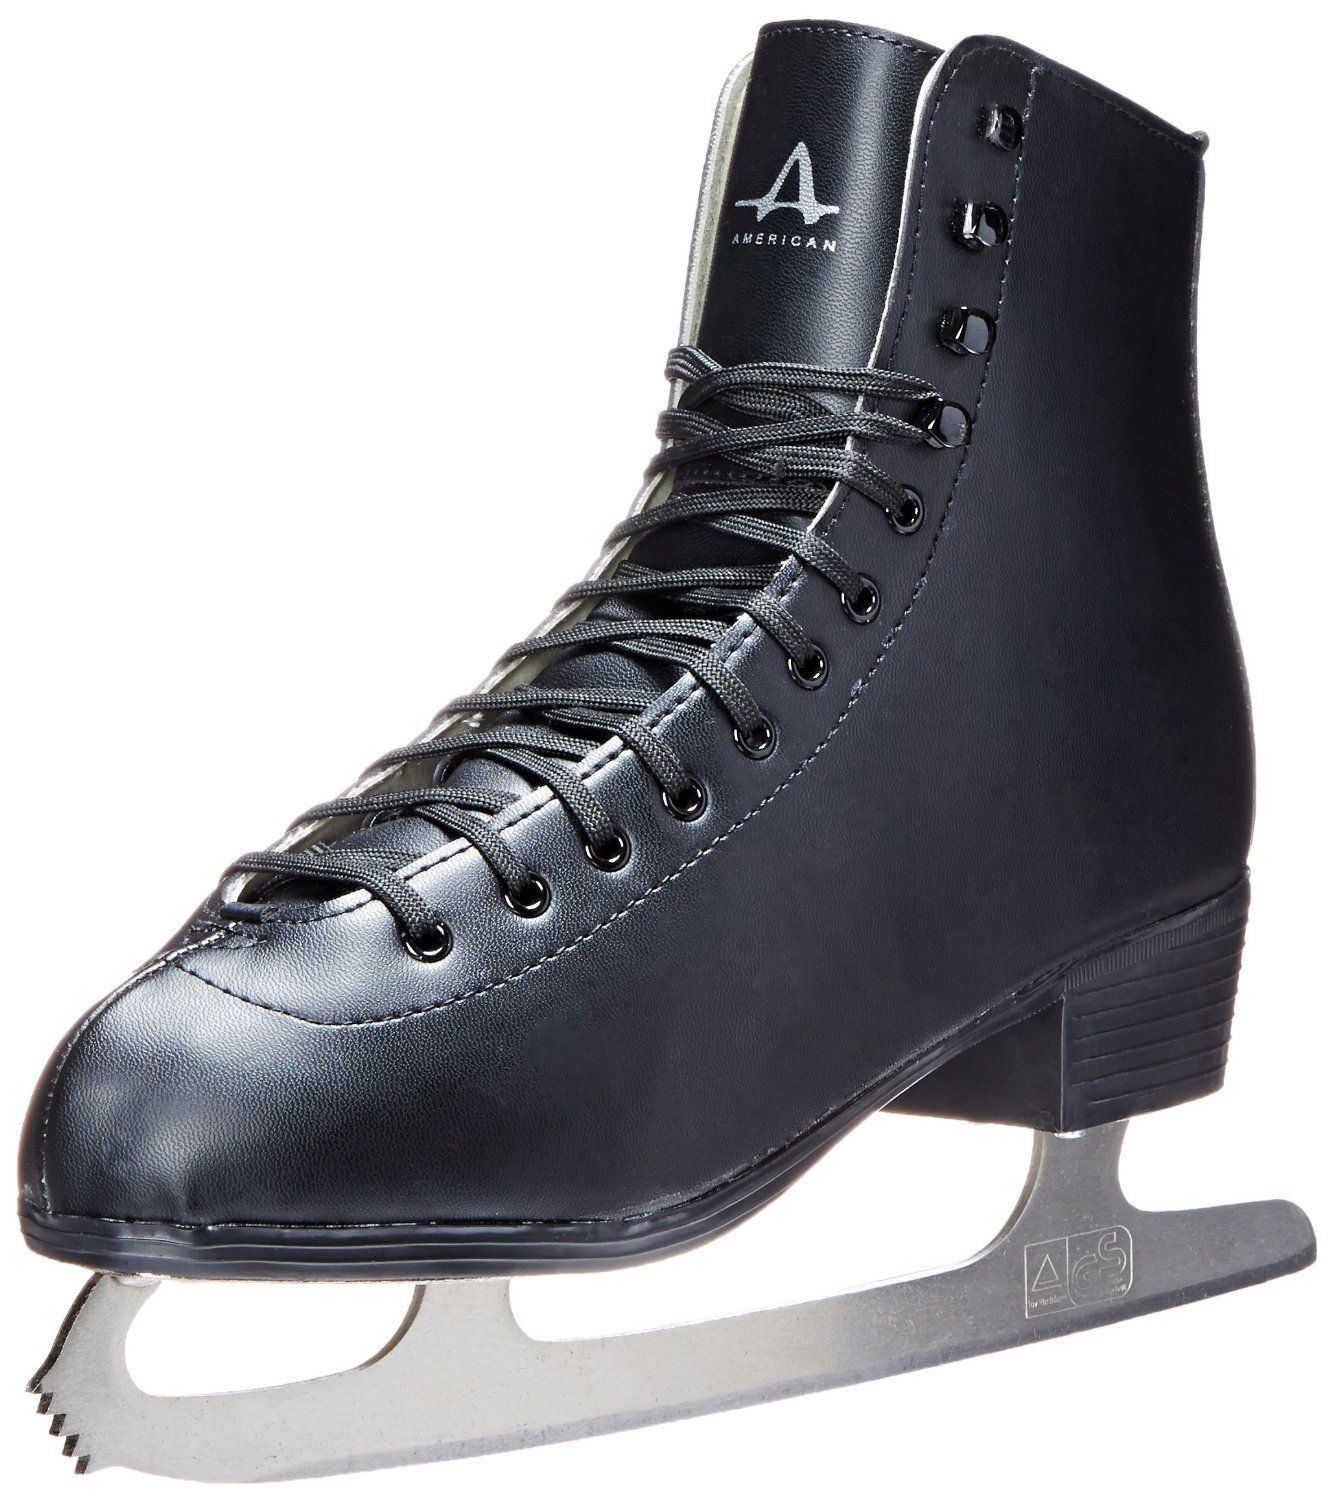 the 8 best ice skates to buy in 2017